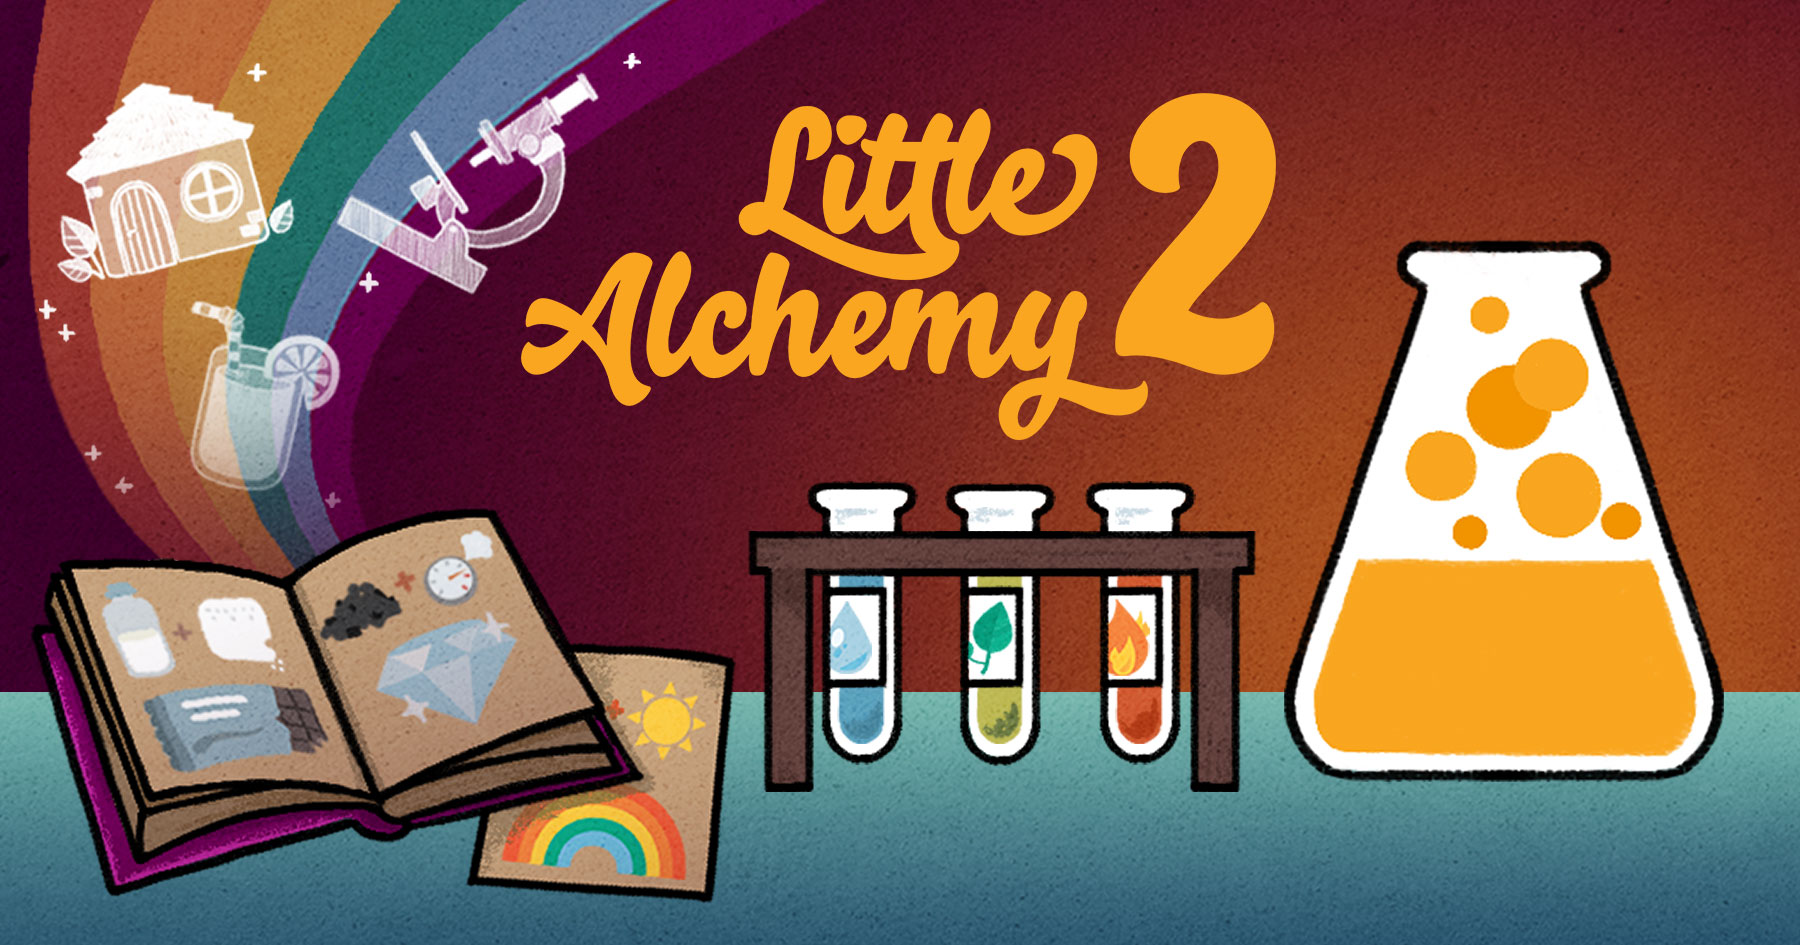 little alchemy 2 wrtten with an orange fonts